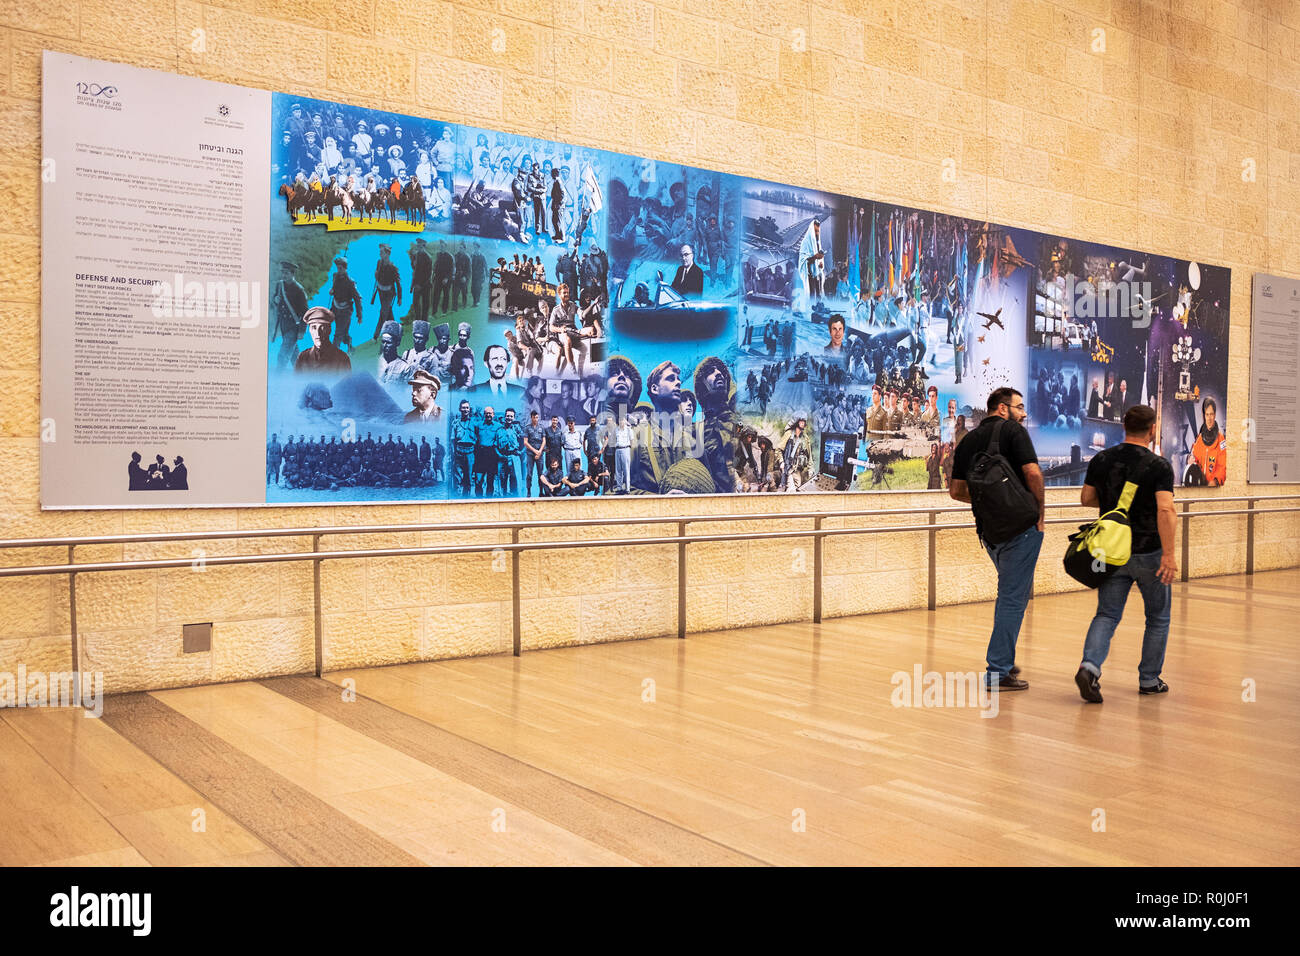 Two travelers pass one of the '120 Years of Zionism' murals at Ben Gurion Airport in Tel Aviv, Israel. - Stock Image